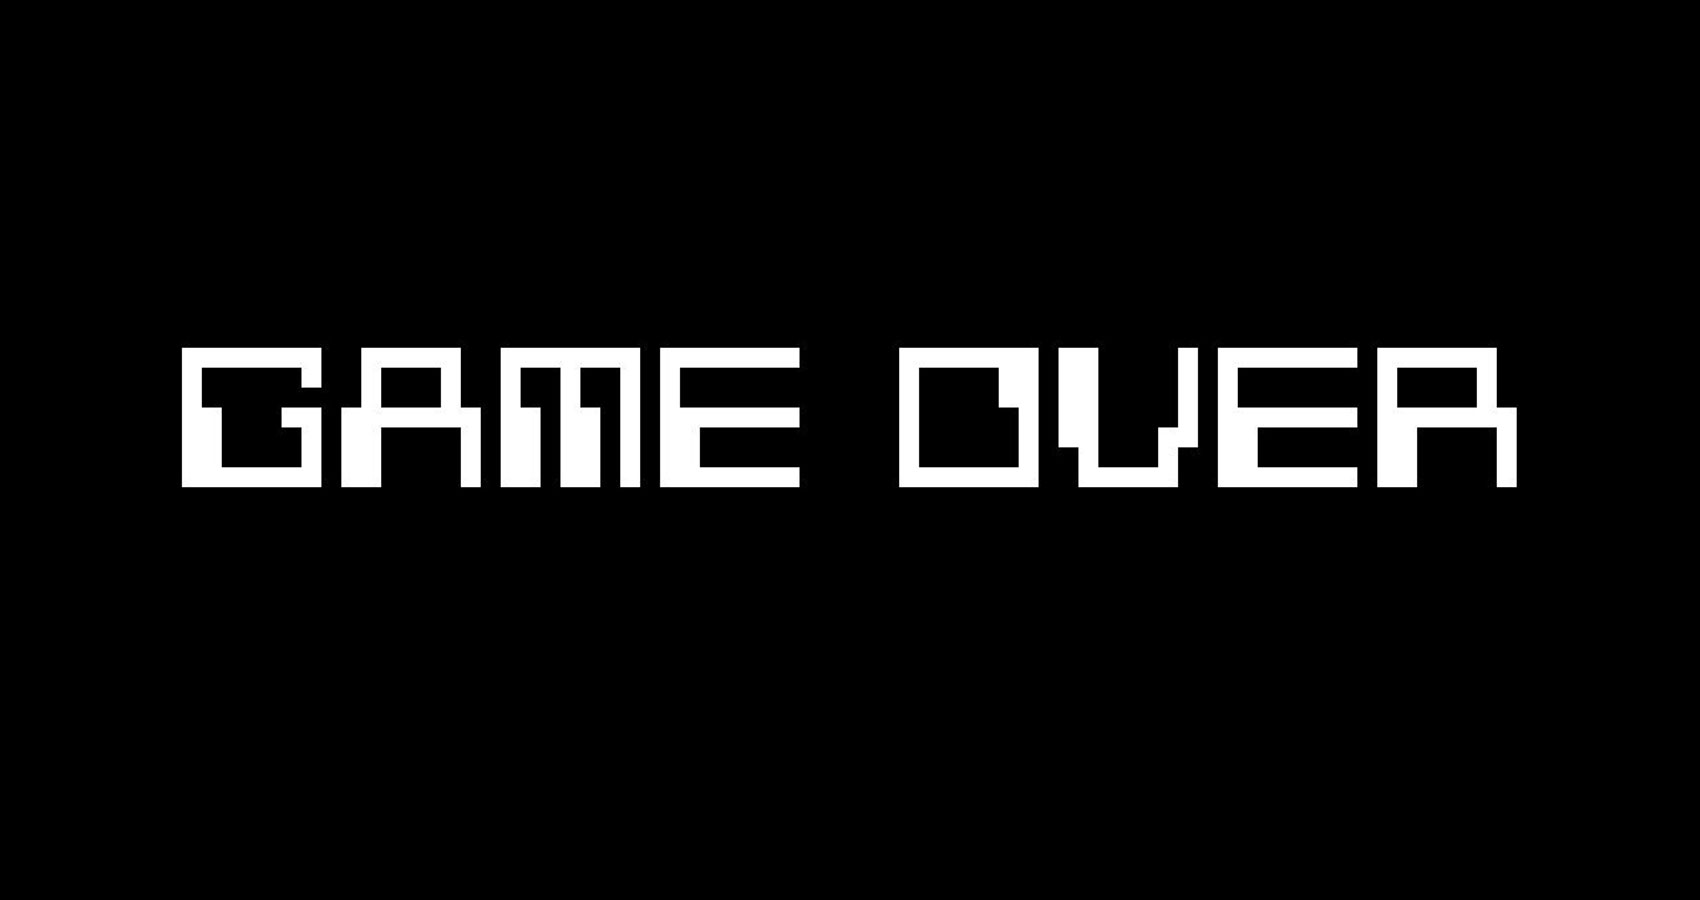 Game Over written by Belén Olavarría at Spillwords.com